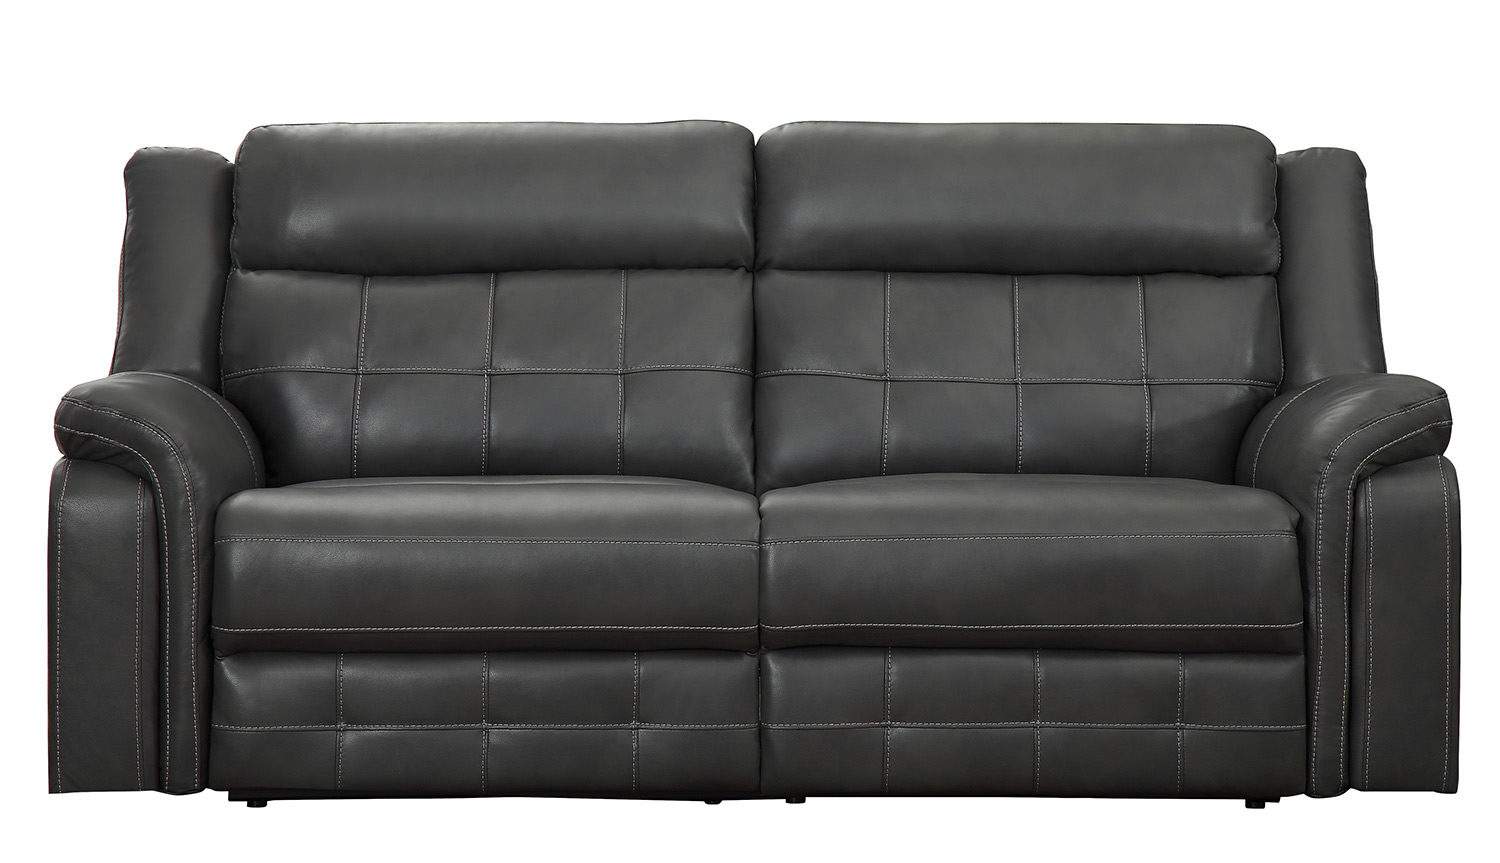 Homelegance Keridge Double Reclining Sofa - Gray AireHyde